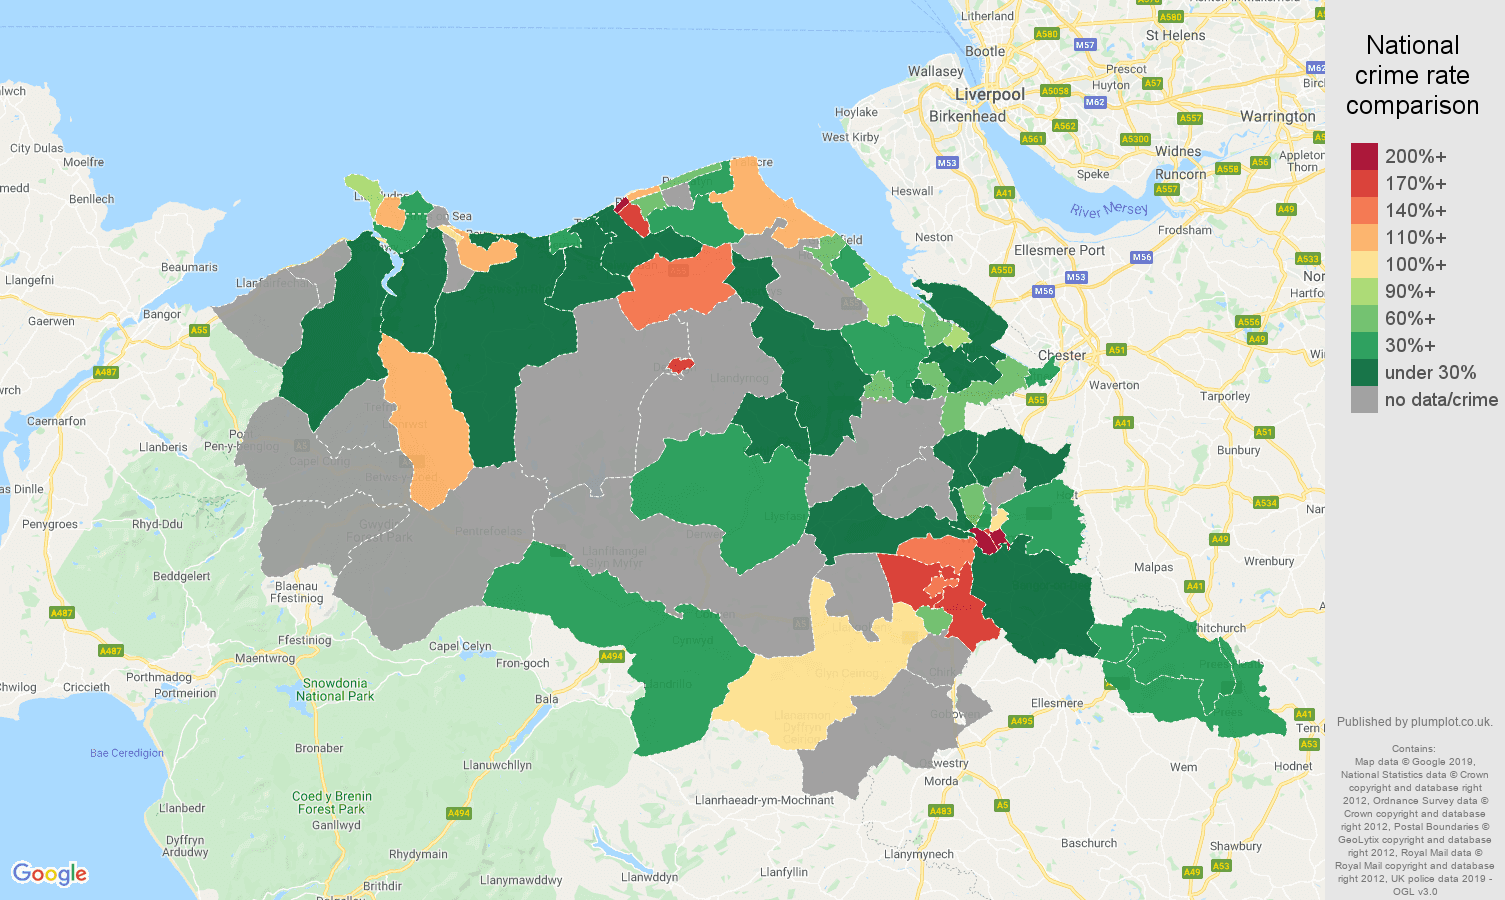 Clwyd possession of weapons crime rate comparison map